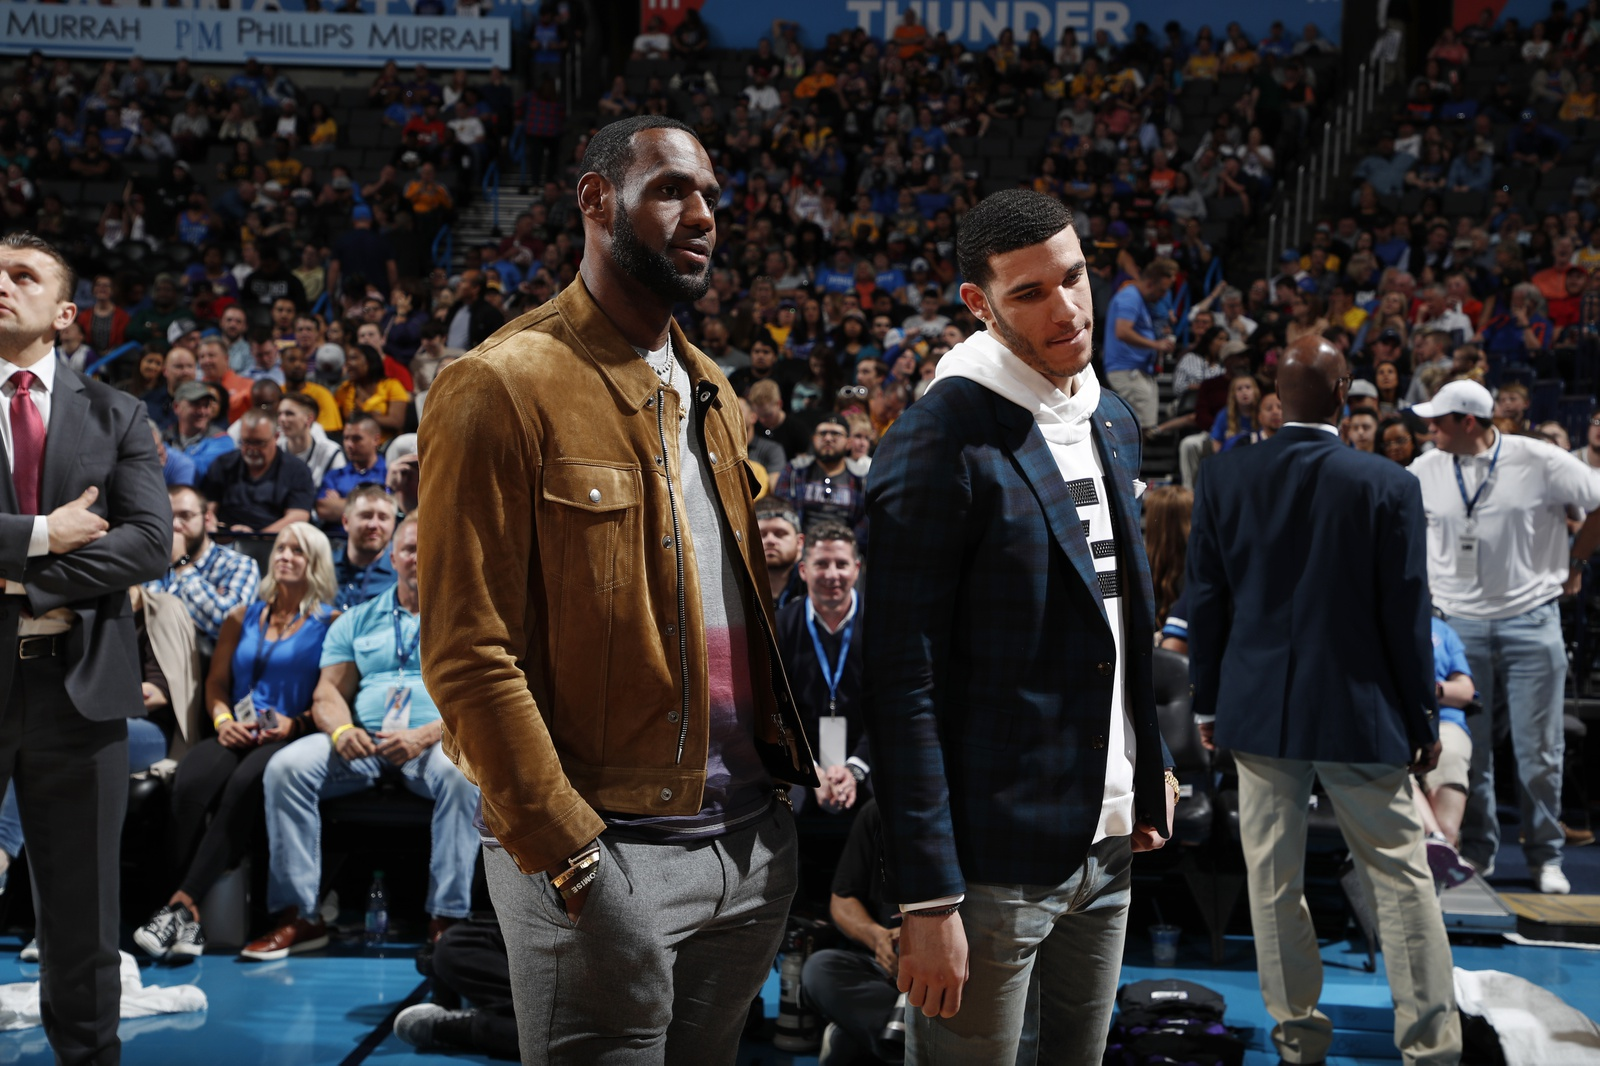 LeBron James #23 and Lonzo Ball #2 of the Los Angeles Lakers talk during a game against the Oklahoma City Thunder on April 2, 2019 at Chesapeake Energy Arena in Oklahoma City, Oklahoma.